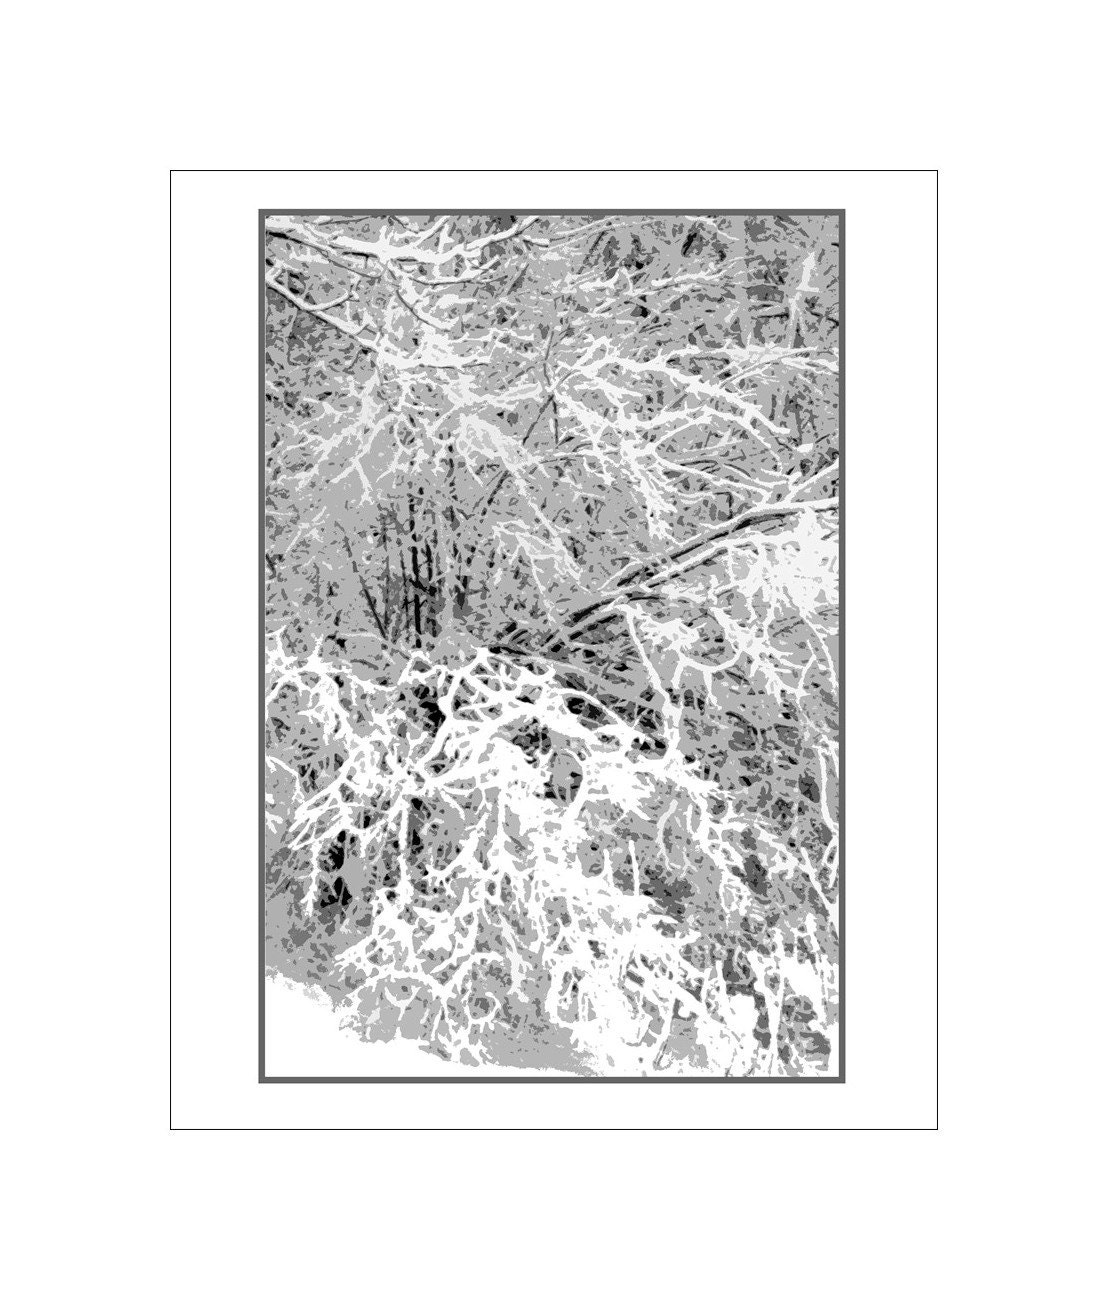 Snow Laden Branches,  Black And White Abstract Fine Art Photo, 16 x 20,  Winter's Lace, Maine Snowstorm,  Snow White Fantasy Photograph